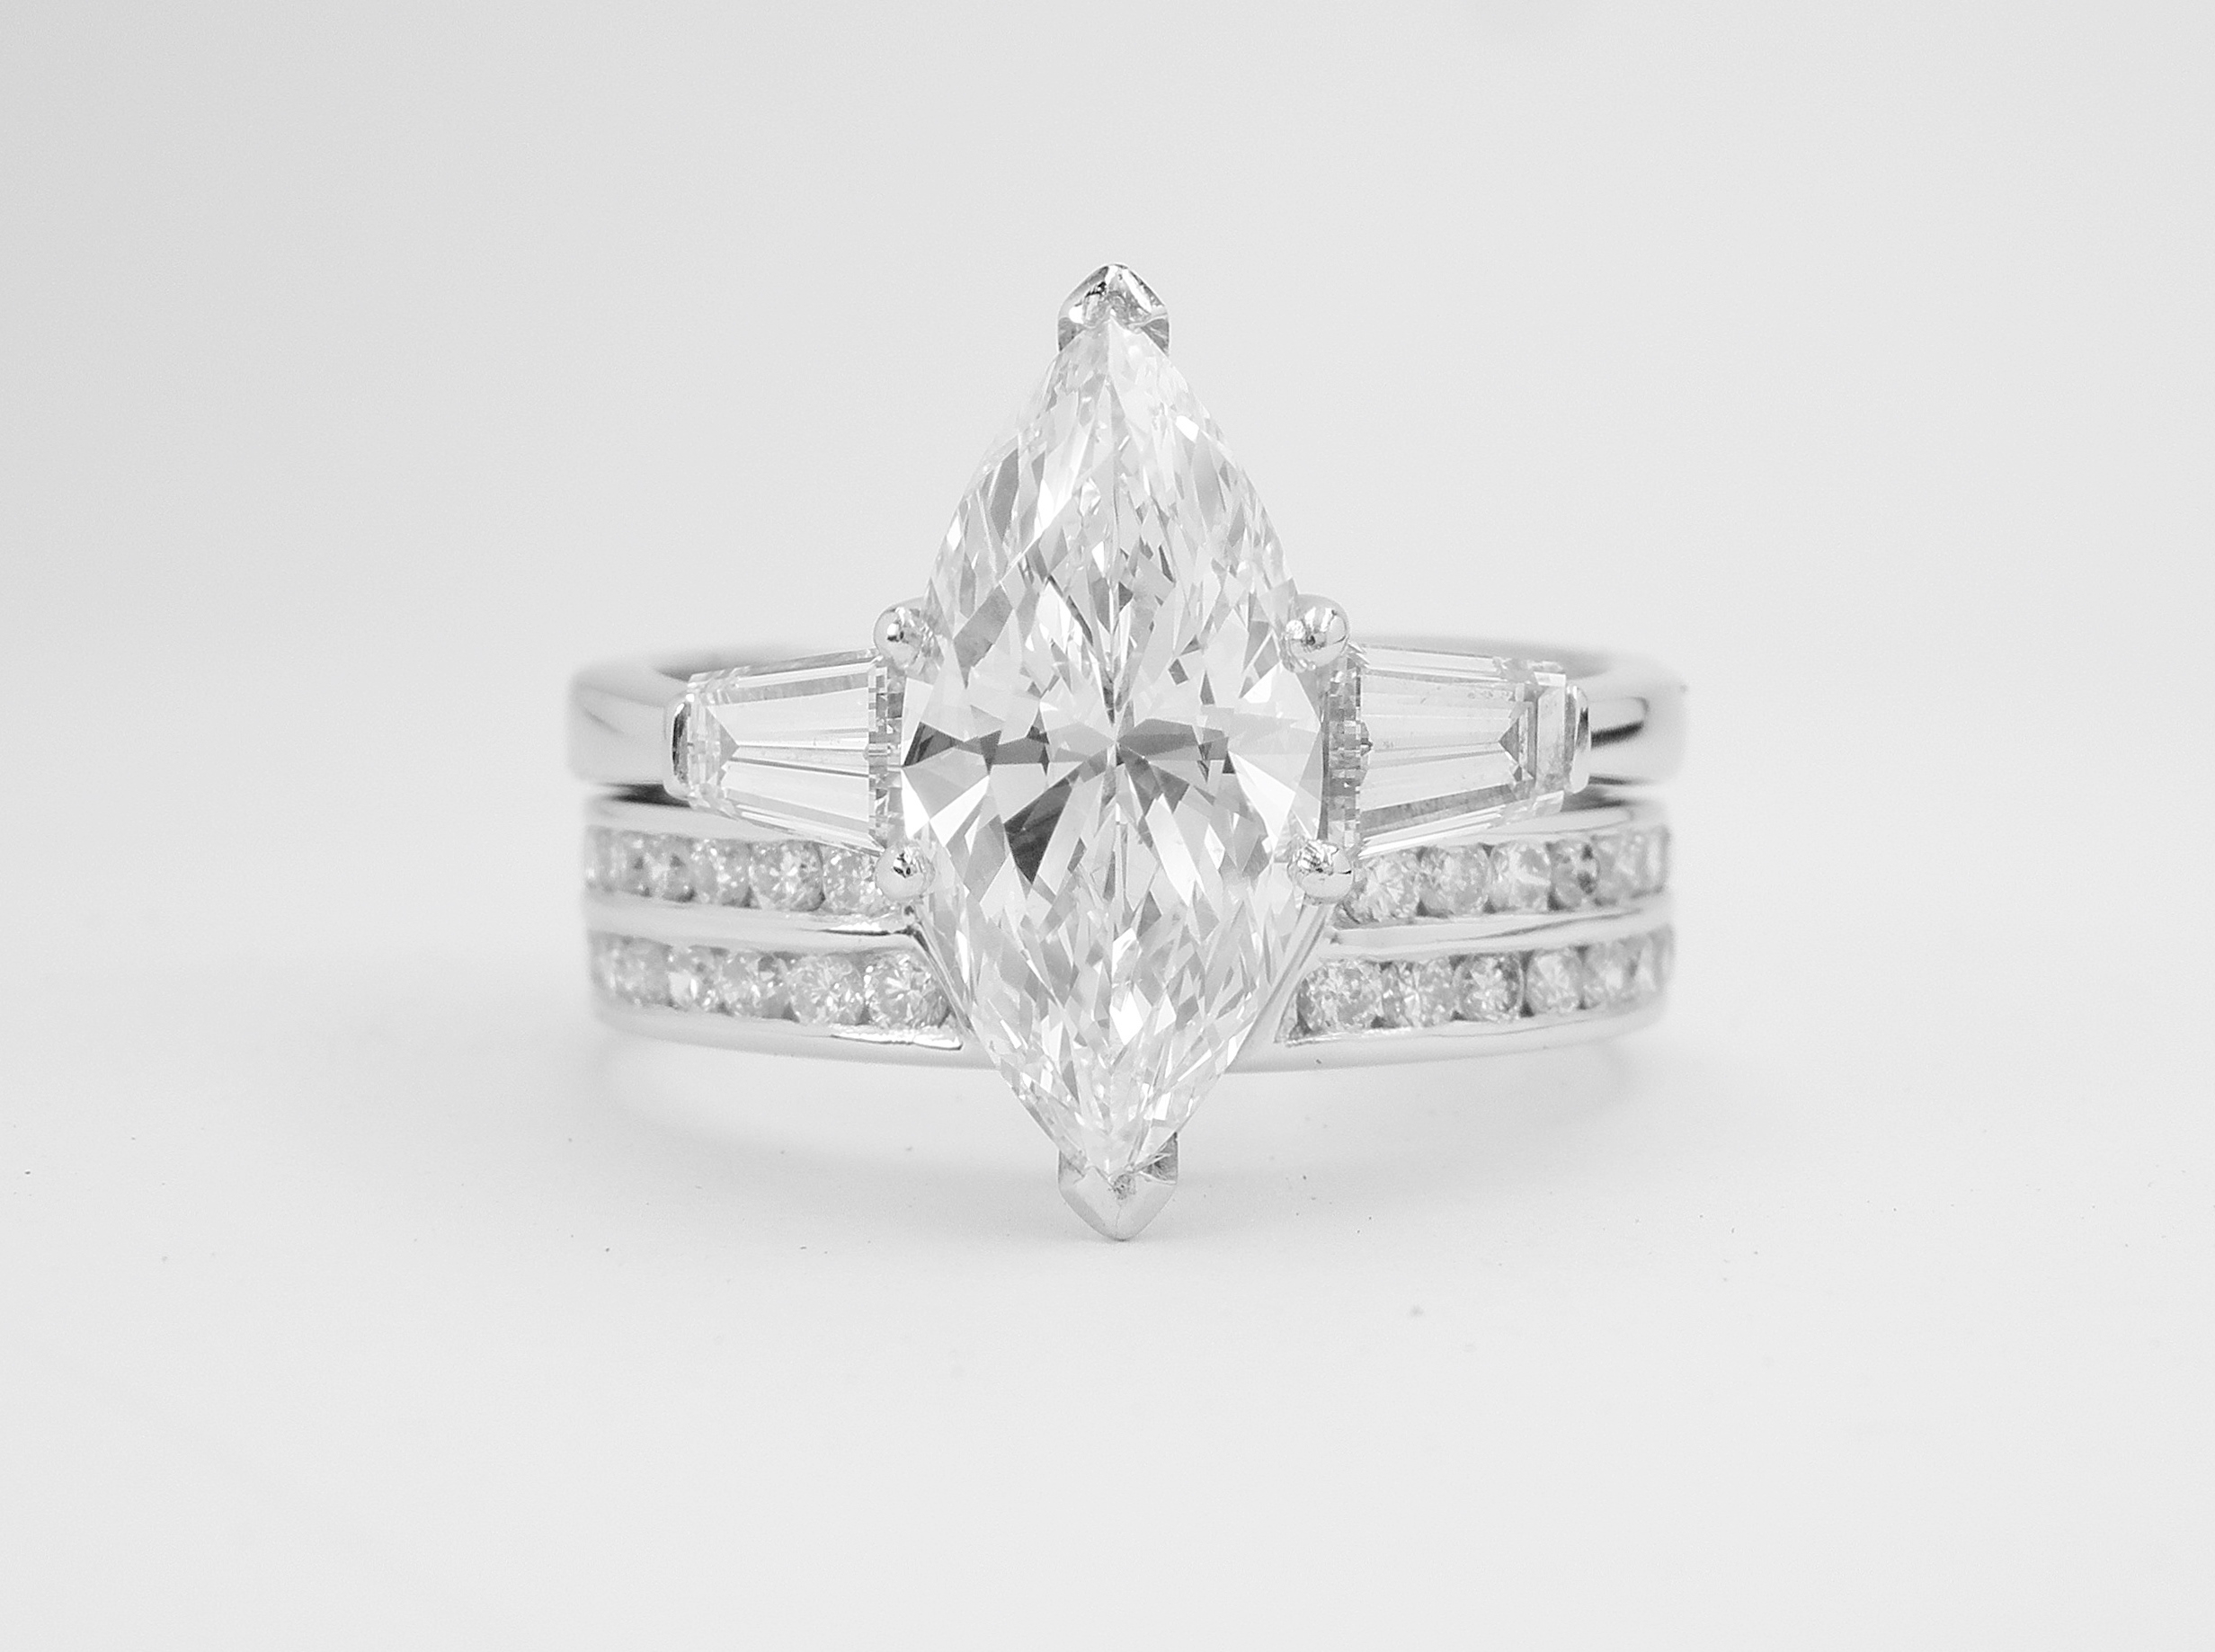 Double channel set round brilliant cut platinum wedding ring shaped with a fine 'V'shaped panel in centre to allow a diamond marquise ring with baguette shoulders to fit in.